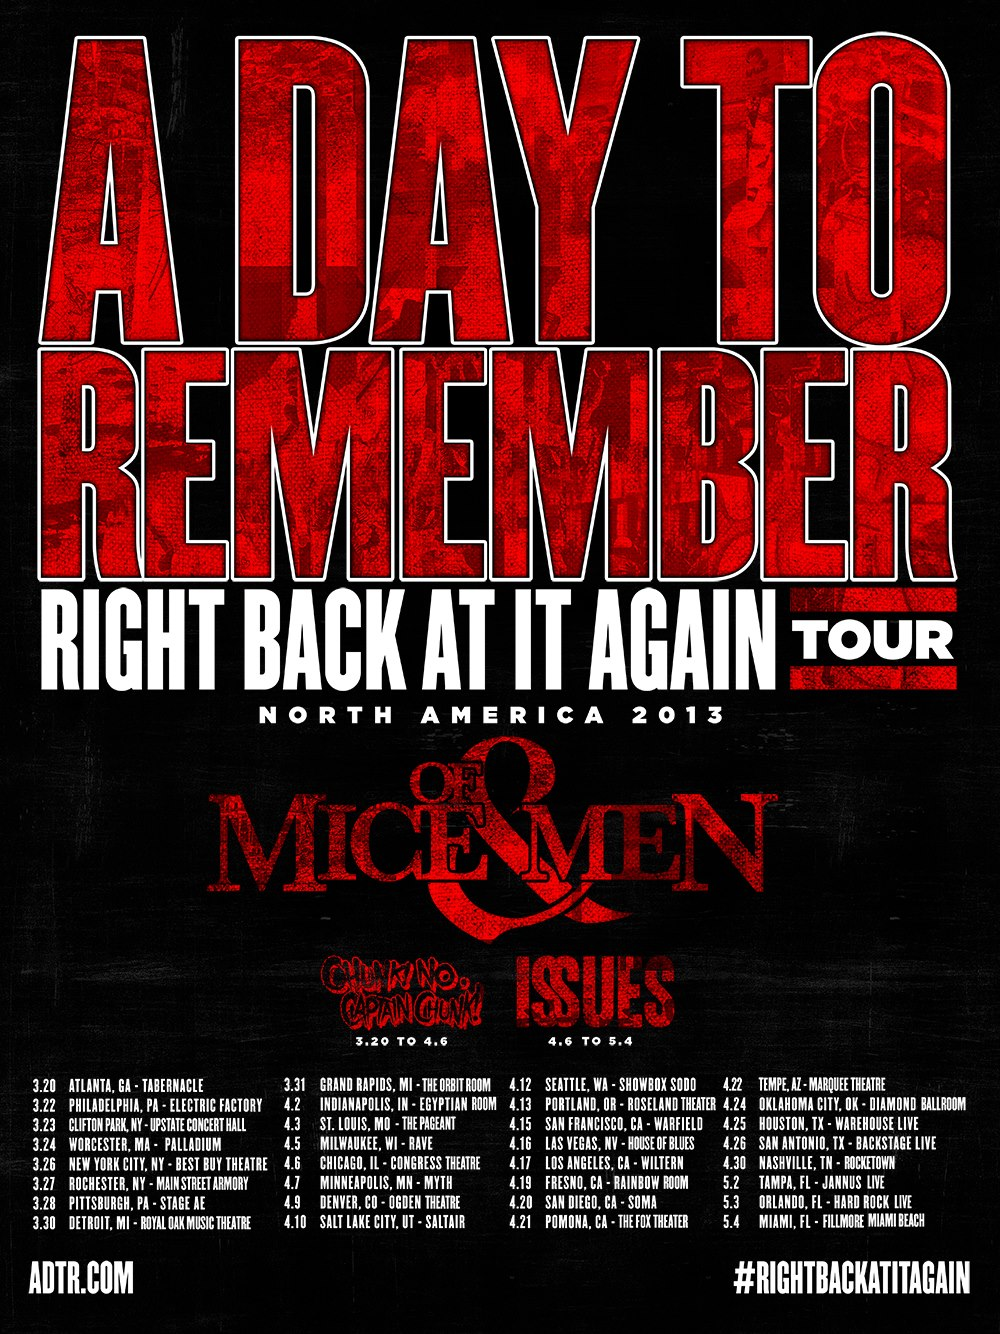 Right Back At It Again Tour 2013